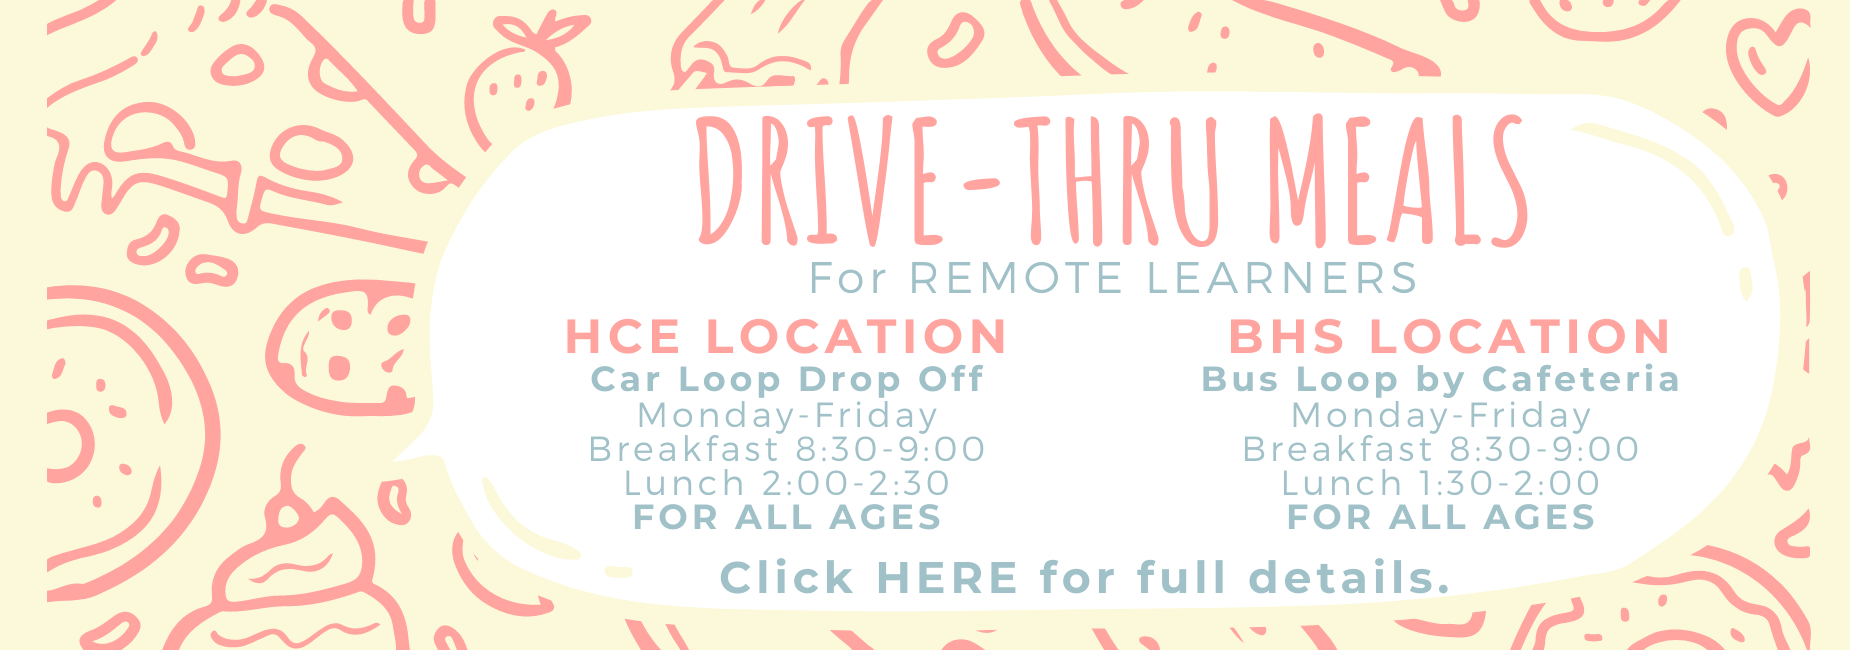 Drive through meals for remote learners